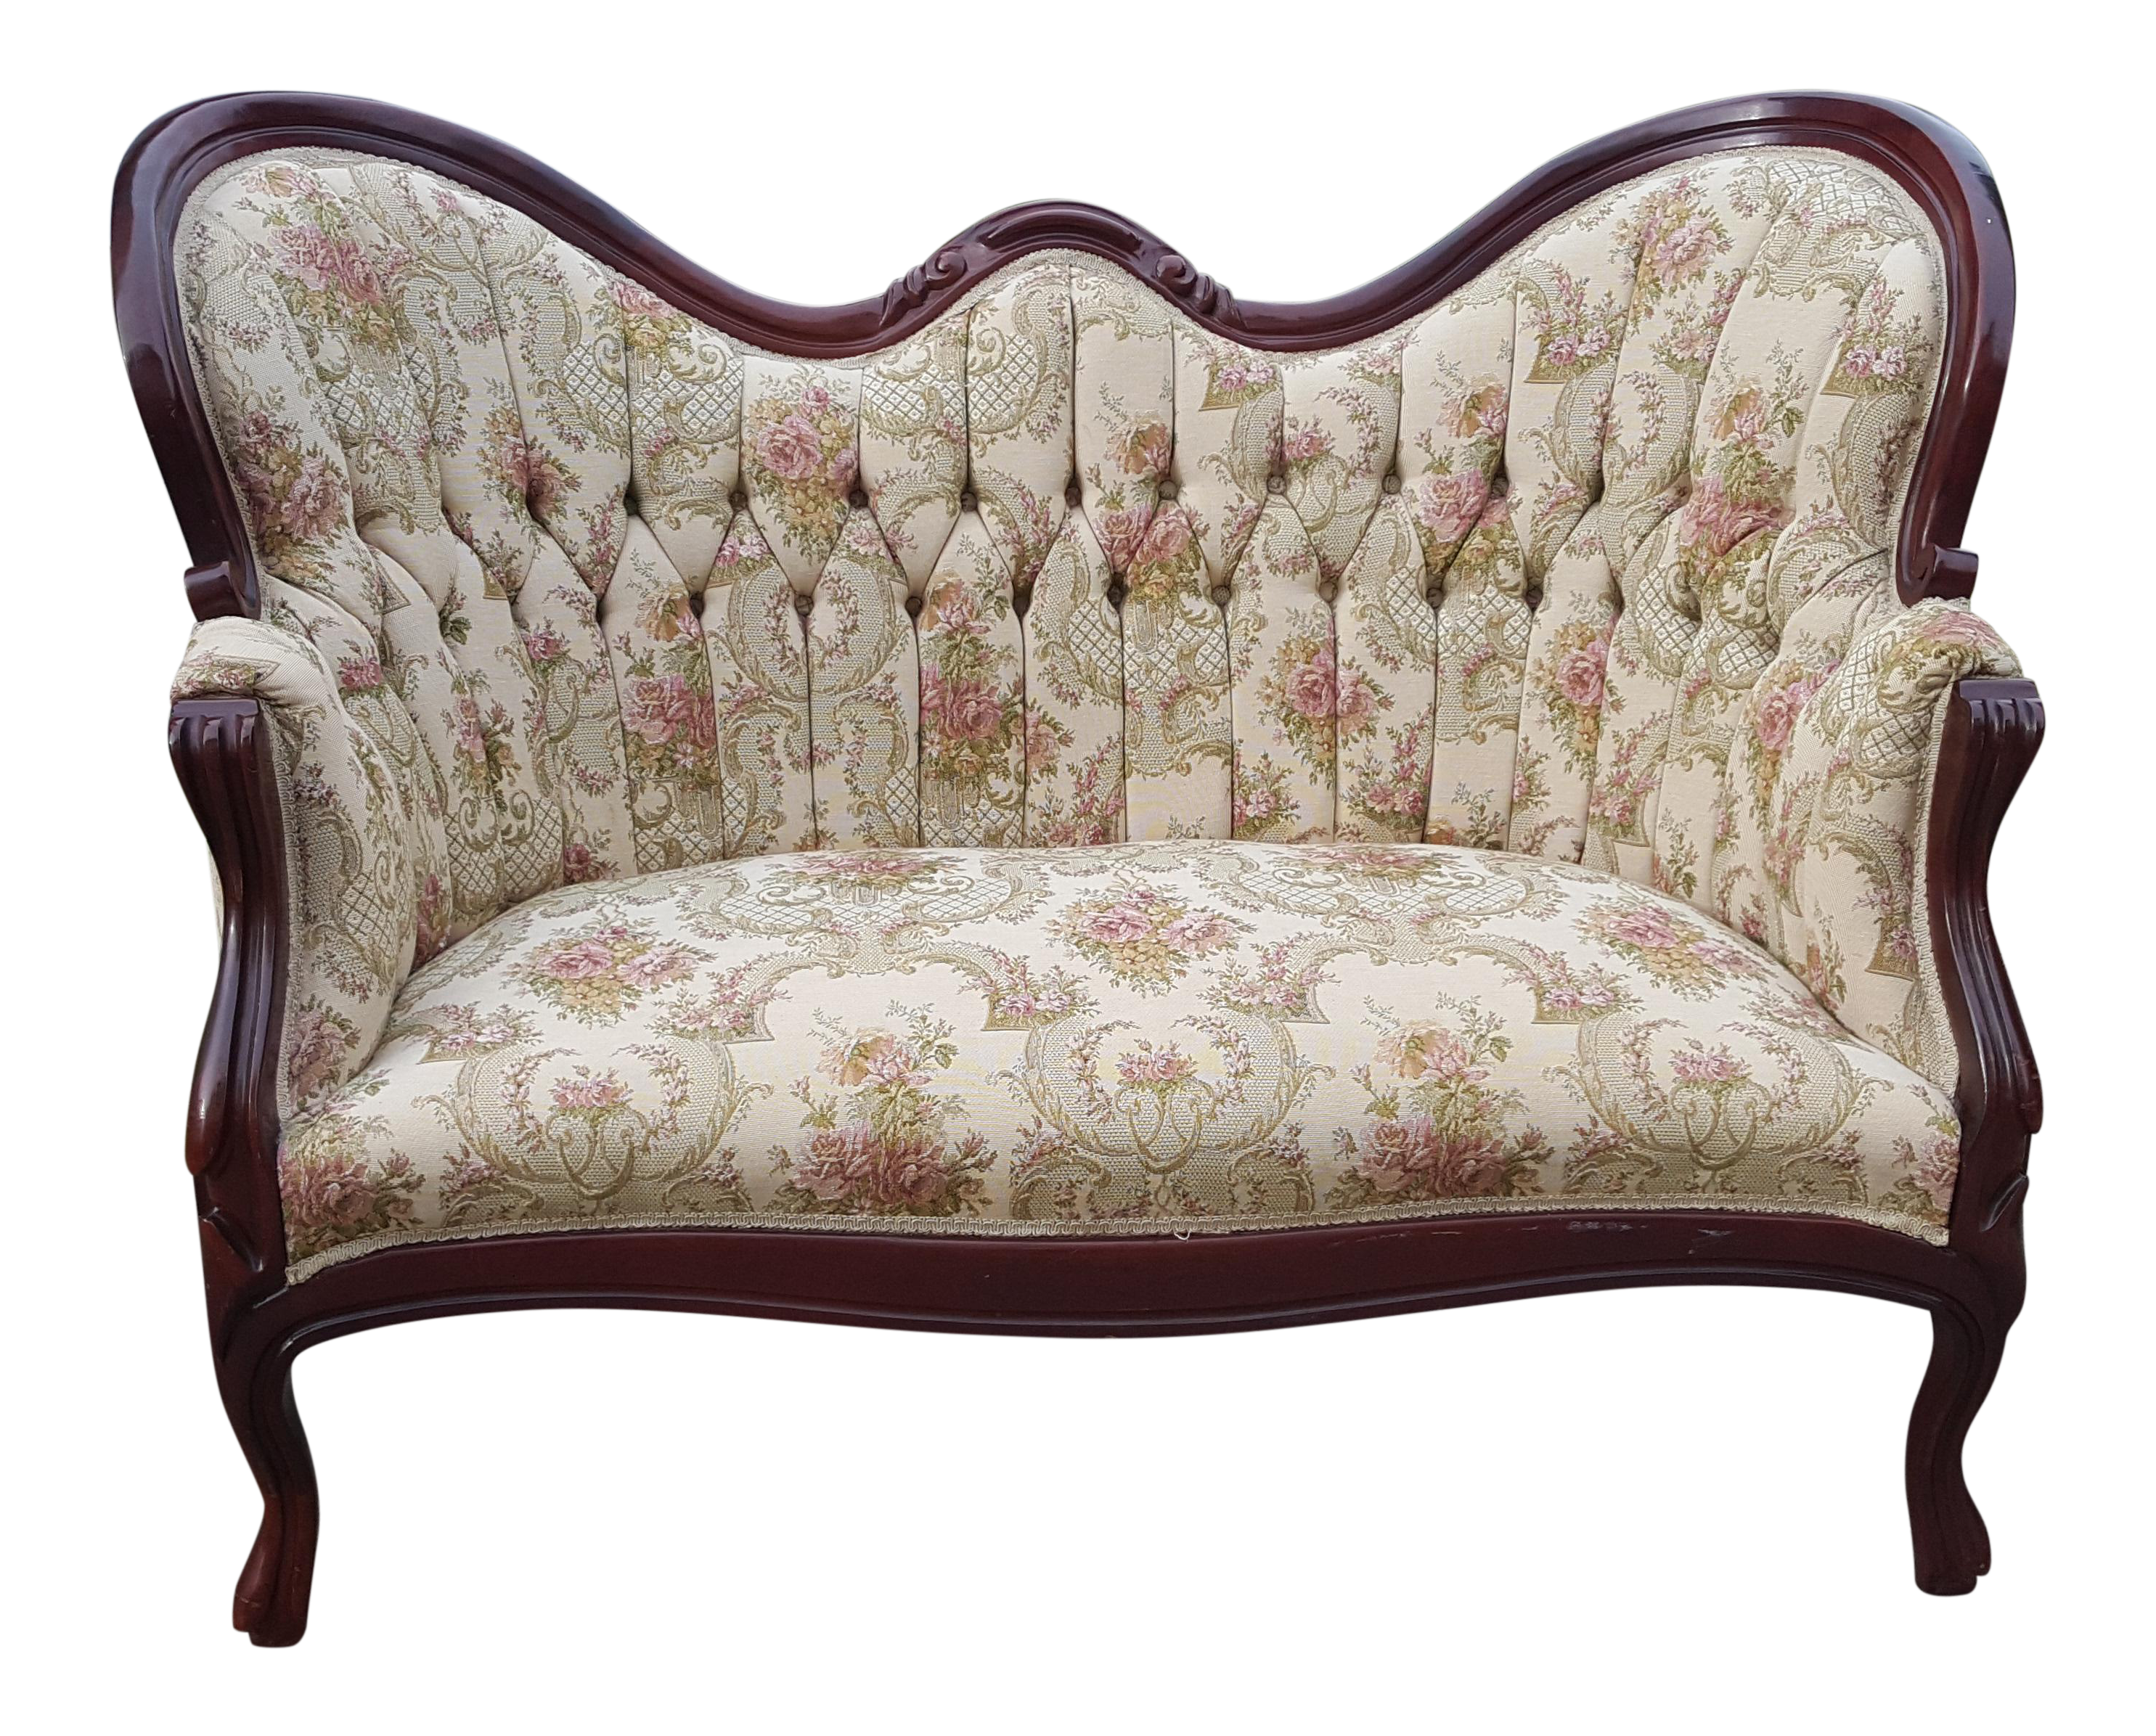 in style back shop antique loveseat arched napoleon the sofa products tufted second custom diamond iii empire made